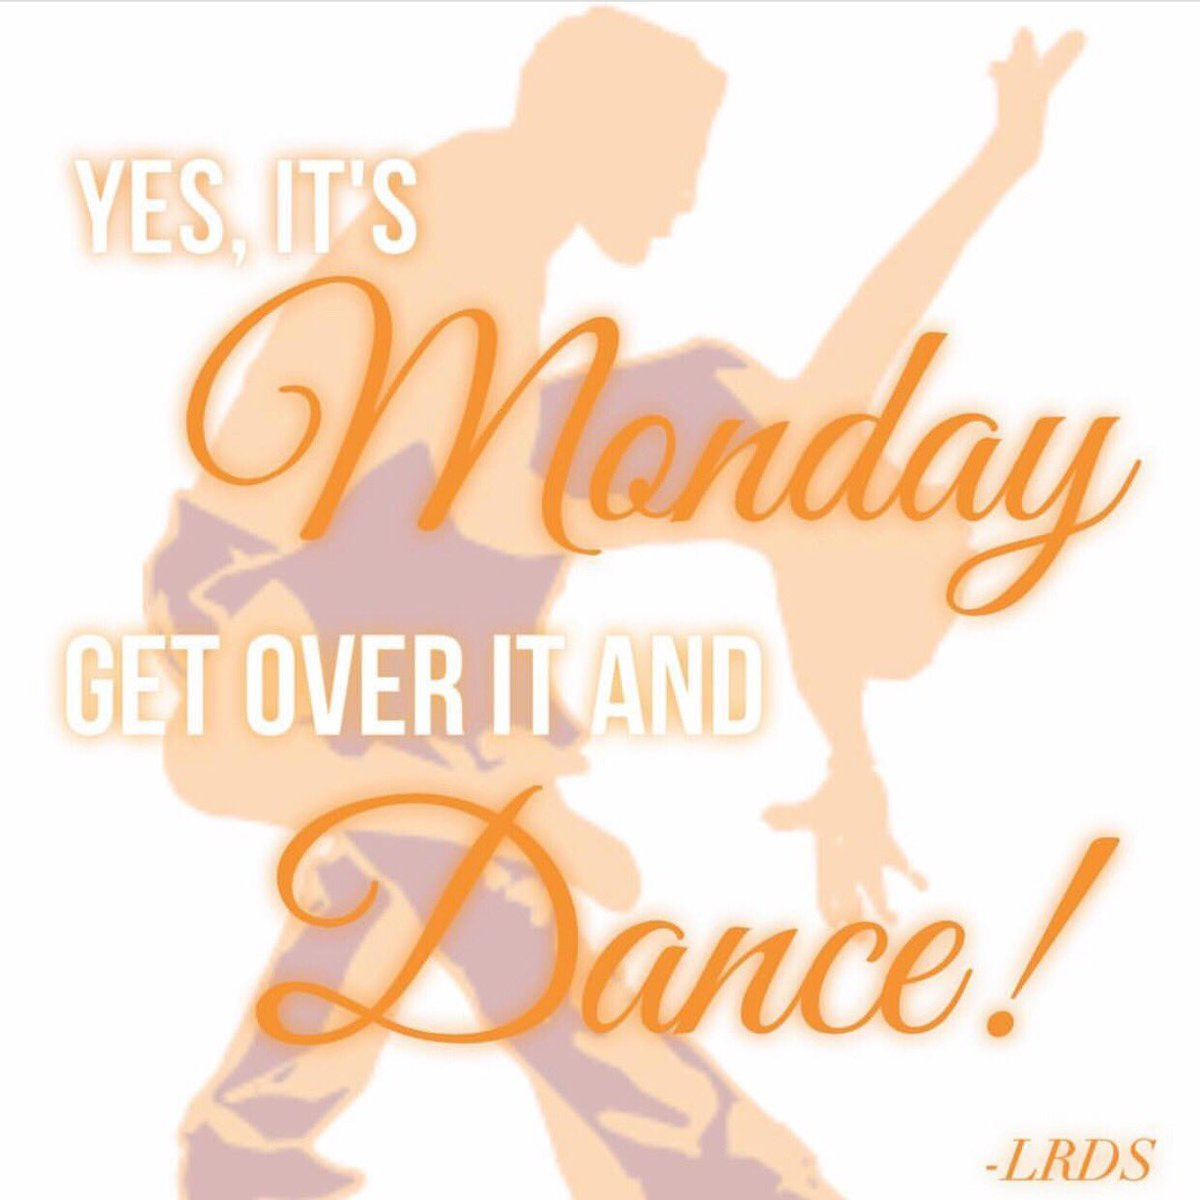 Yes! It&#39;s Monday! Get over it and DANCE!  #MondayMotivation #DanceWithUs #LRDS #iLoveDancing #Stratford #StratfordCT #Salsa #DanceSchool<br>http://pic.twitter.com/z4WkPIOjnW